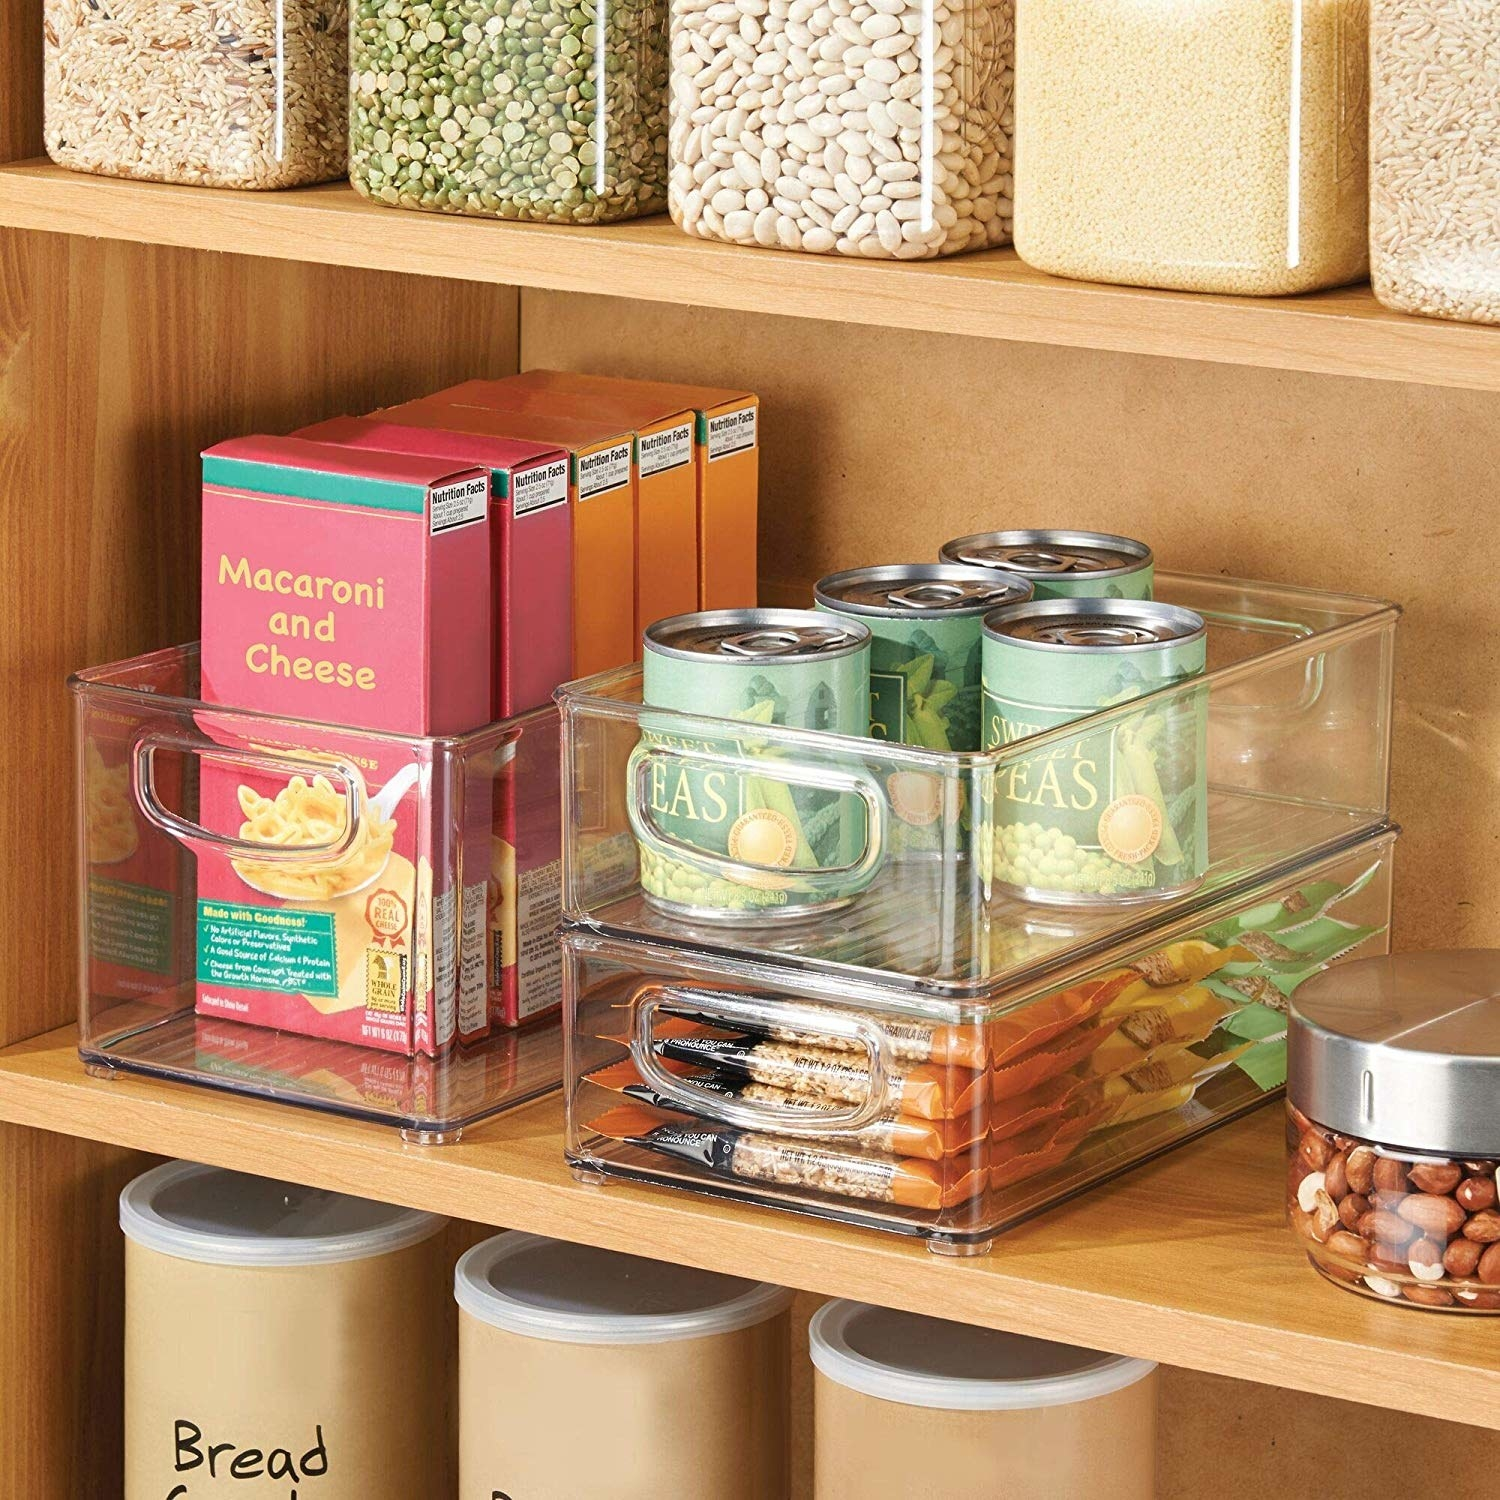 pantry shelves with clear open container on shelves used to organize stuff like mac and cheese boxes and cans of peas